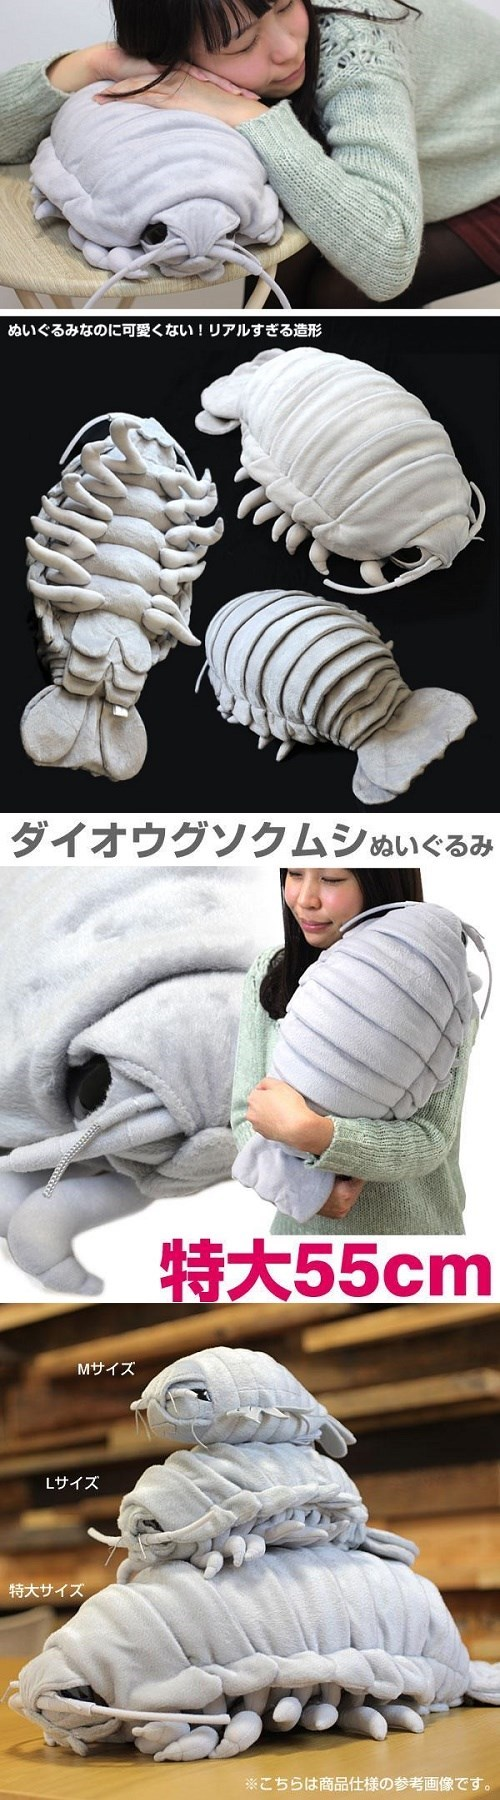 wtf pillows Japan giant isopod - 8075881216